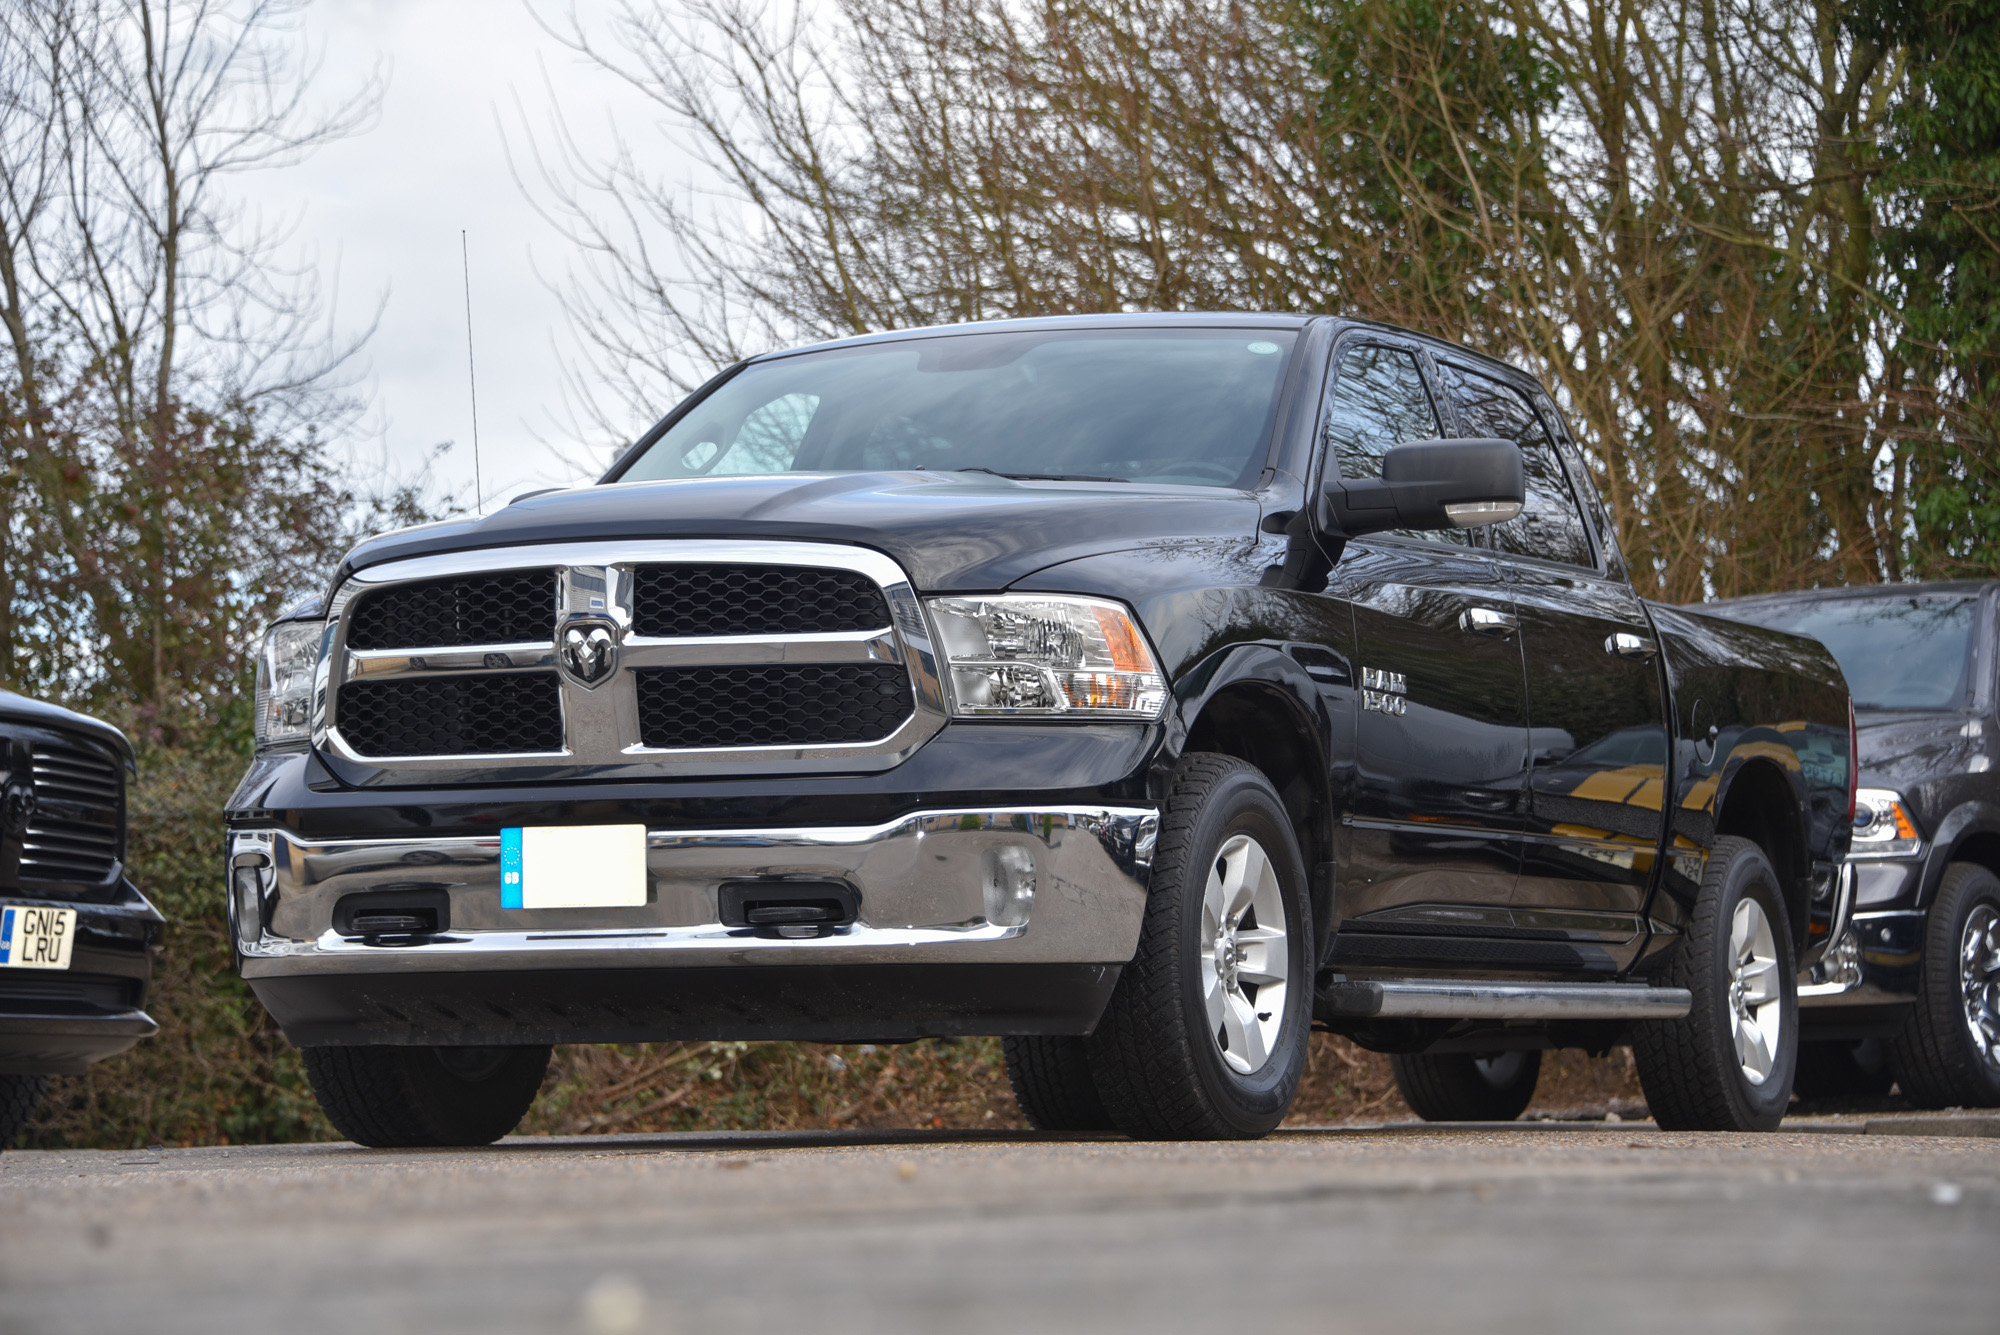 2013 Dodge Ram 4x4 with LPG